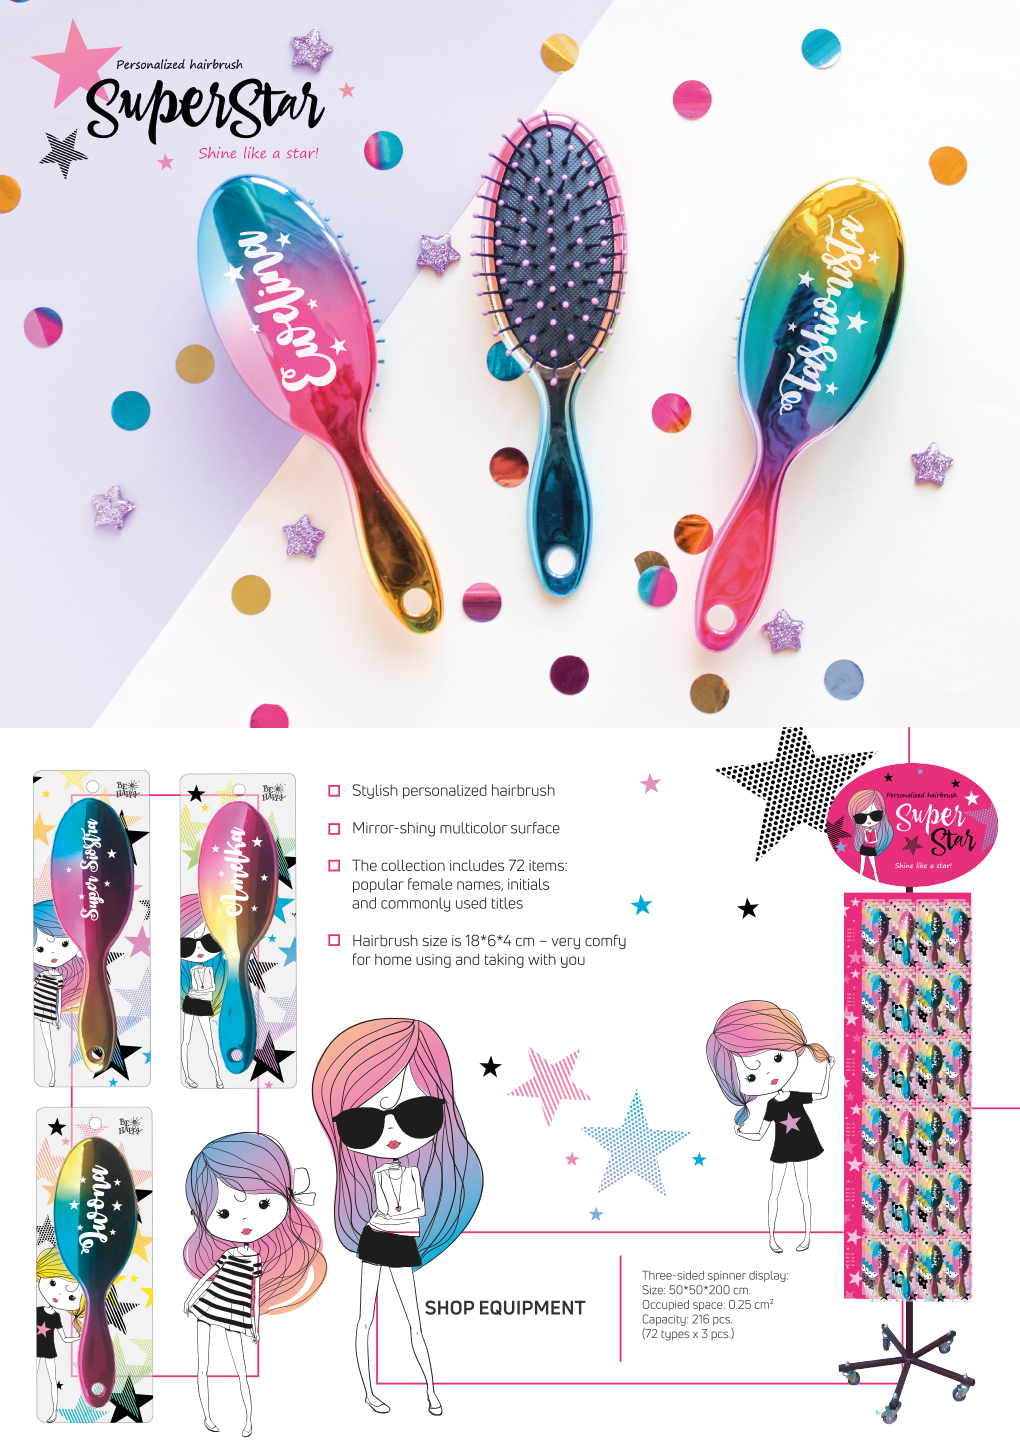 Personalized hairbrush